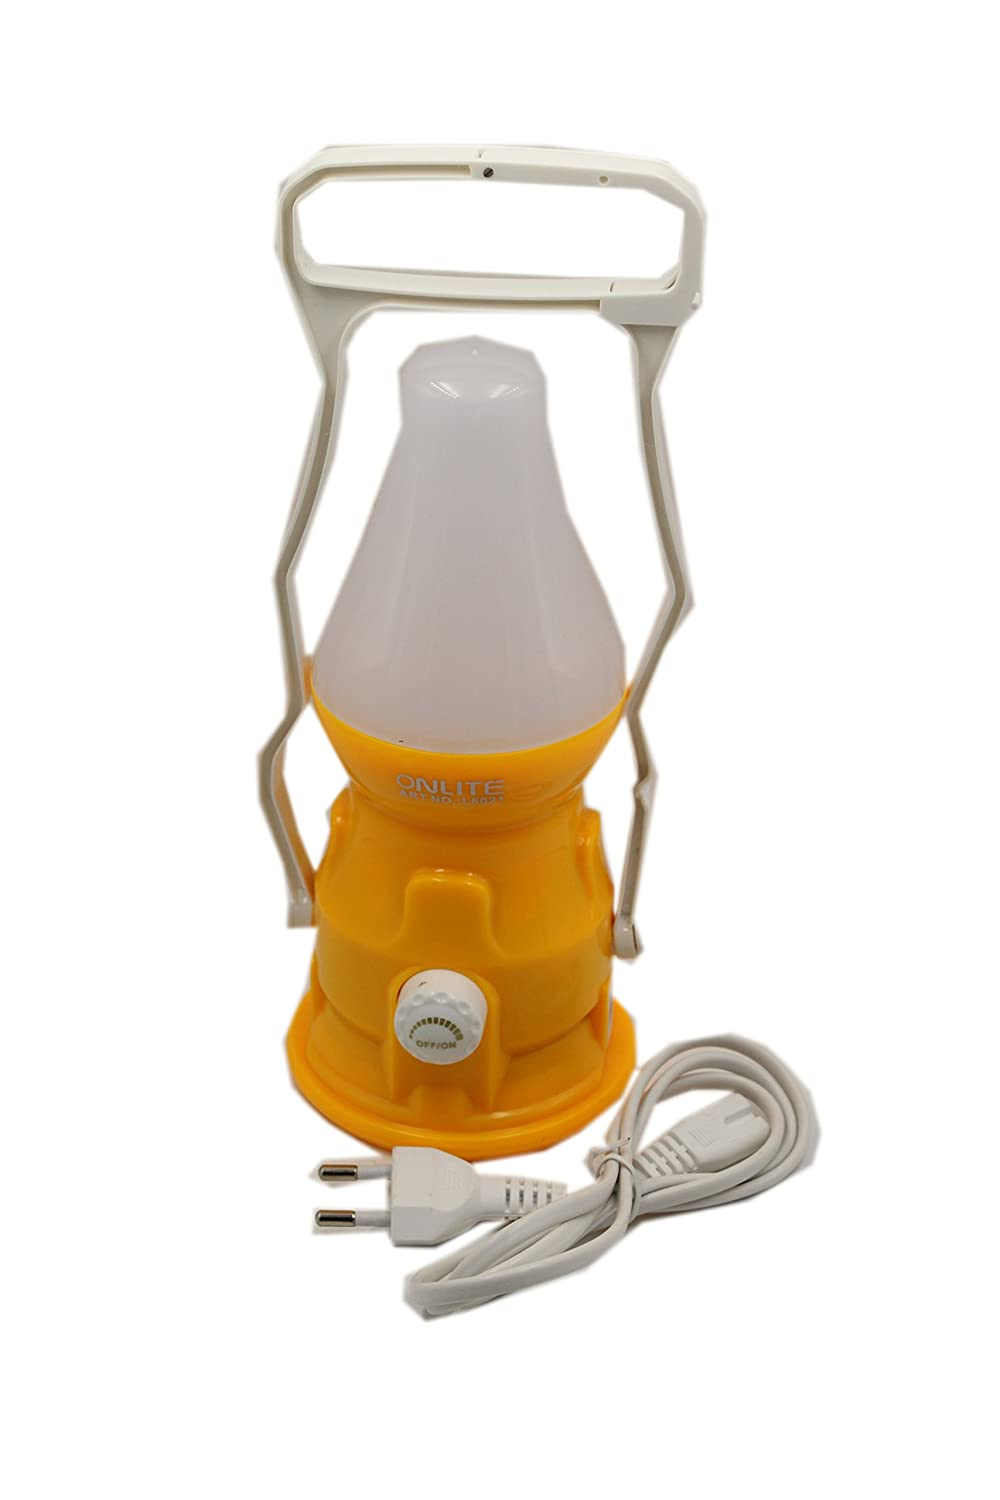 Onlite L6021 Camping Torch